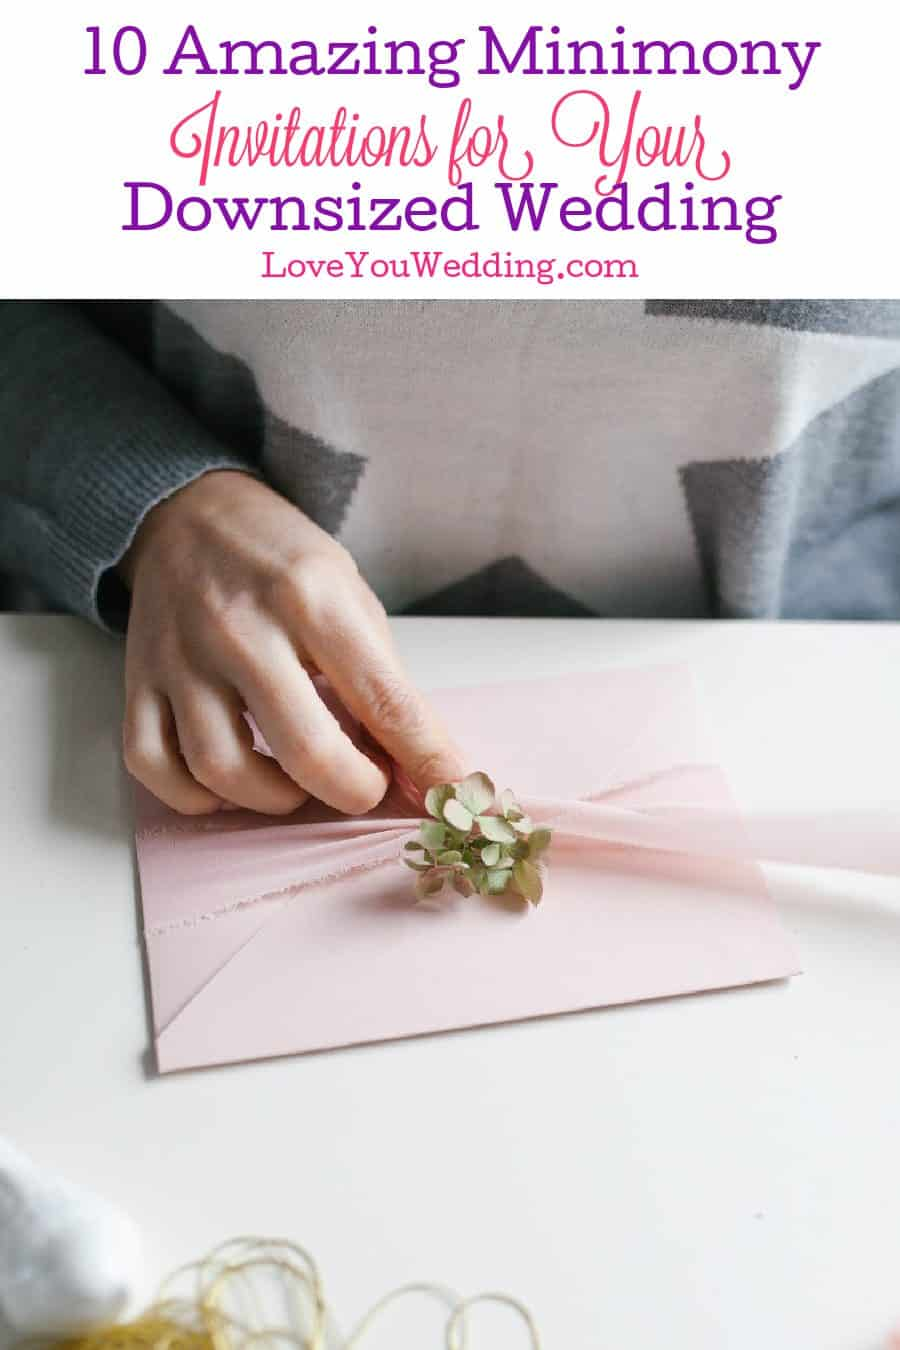 Looking for gorgeous minimony invitations for your micro-wedding? Check out 10 amazing ideas that we're totally in love with!